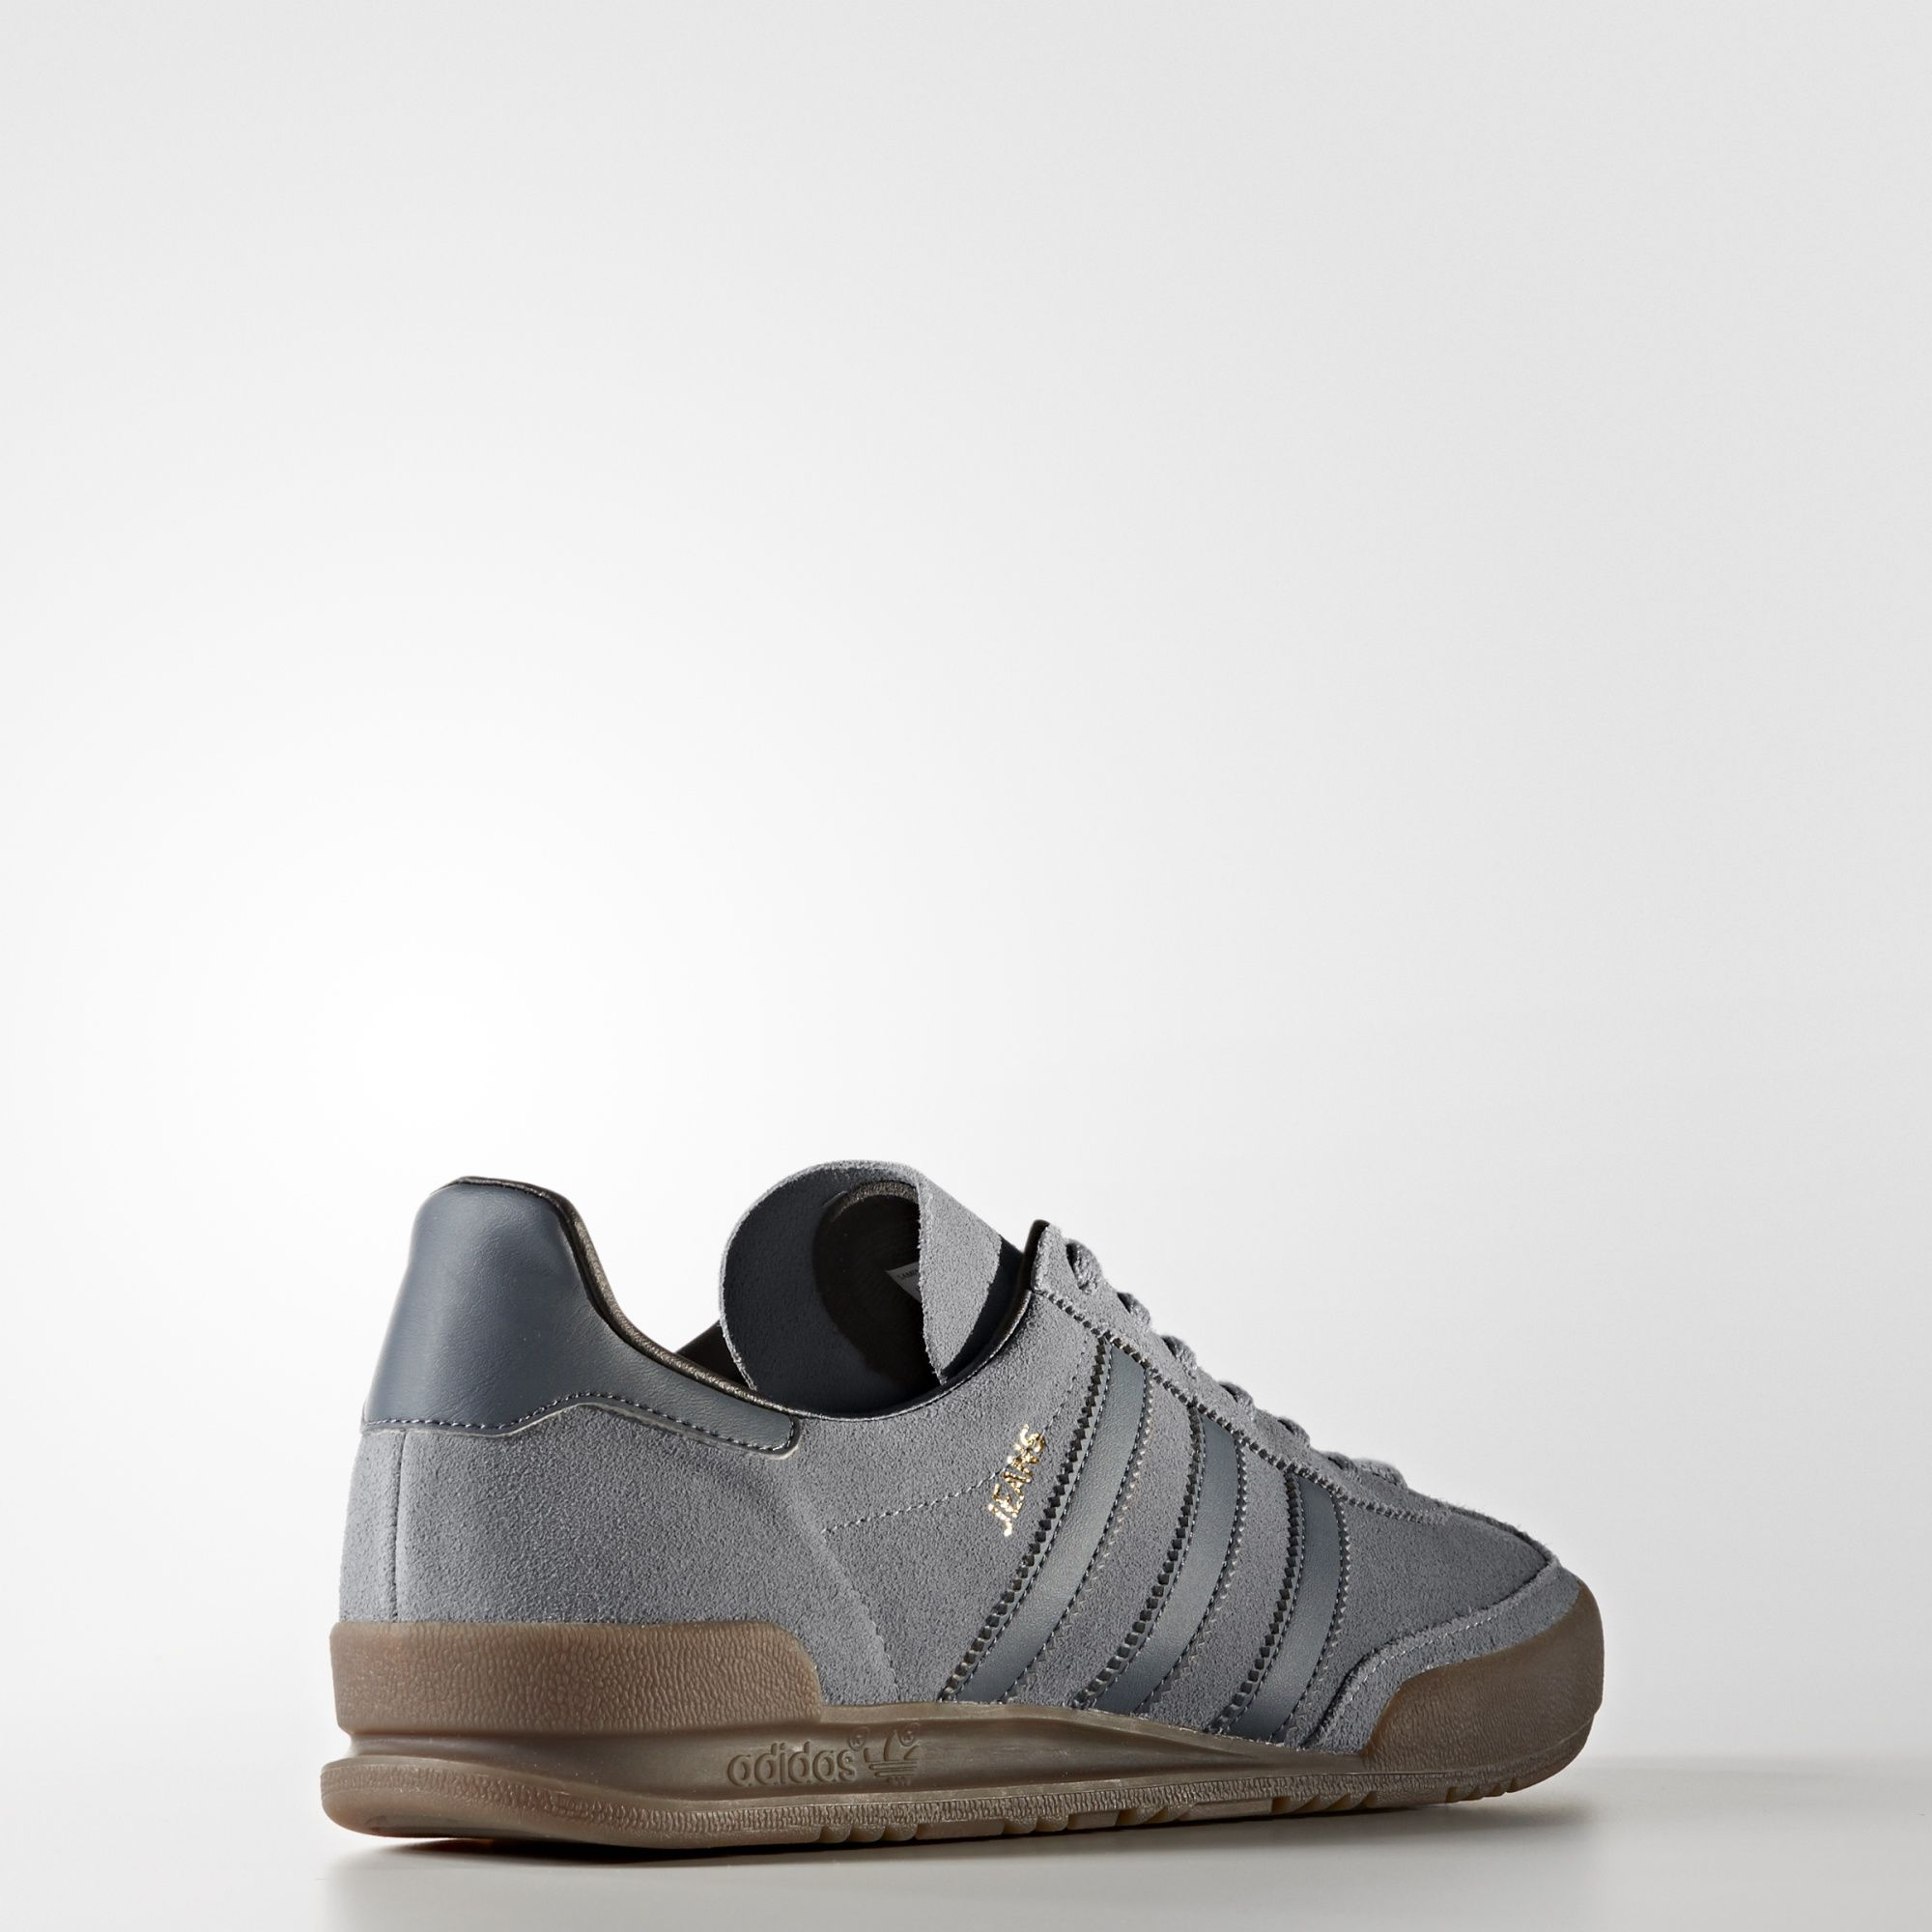 e6e367b66bc5 ... Click to enlarge image adidas jeans grey onix core black 5.jpg ...